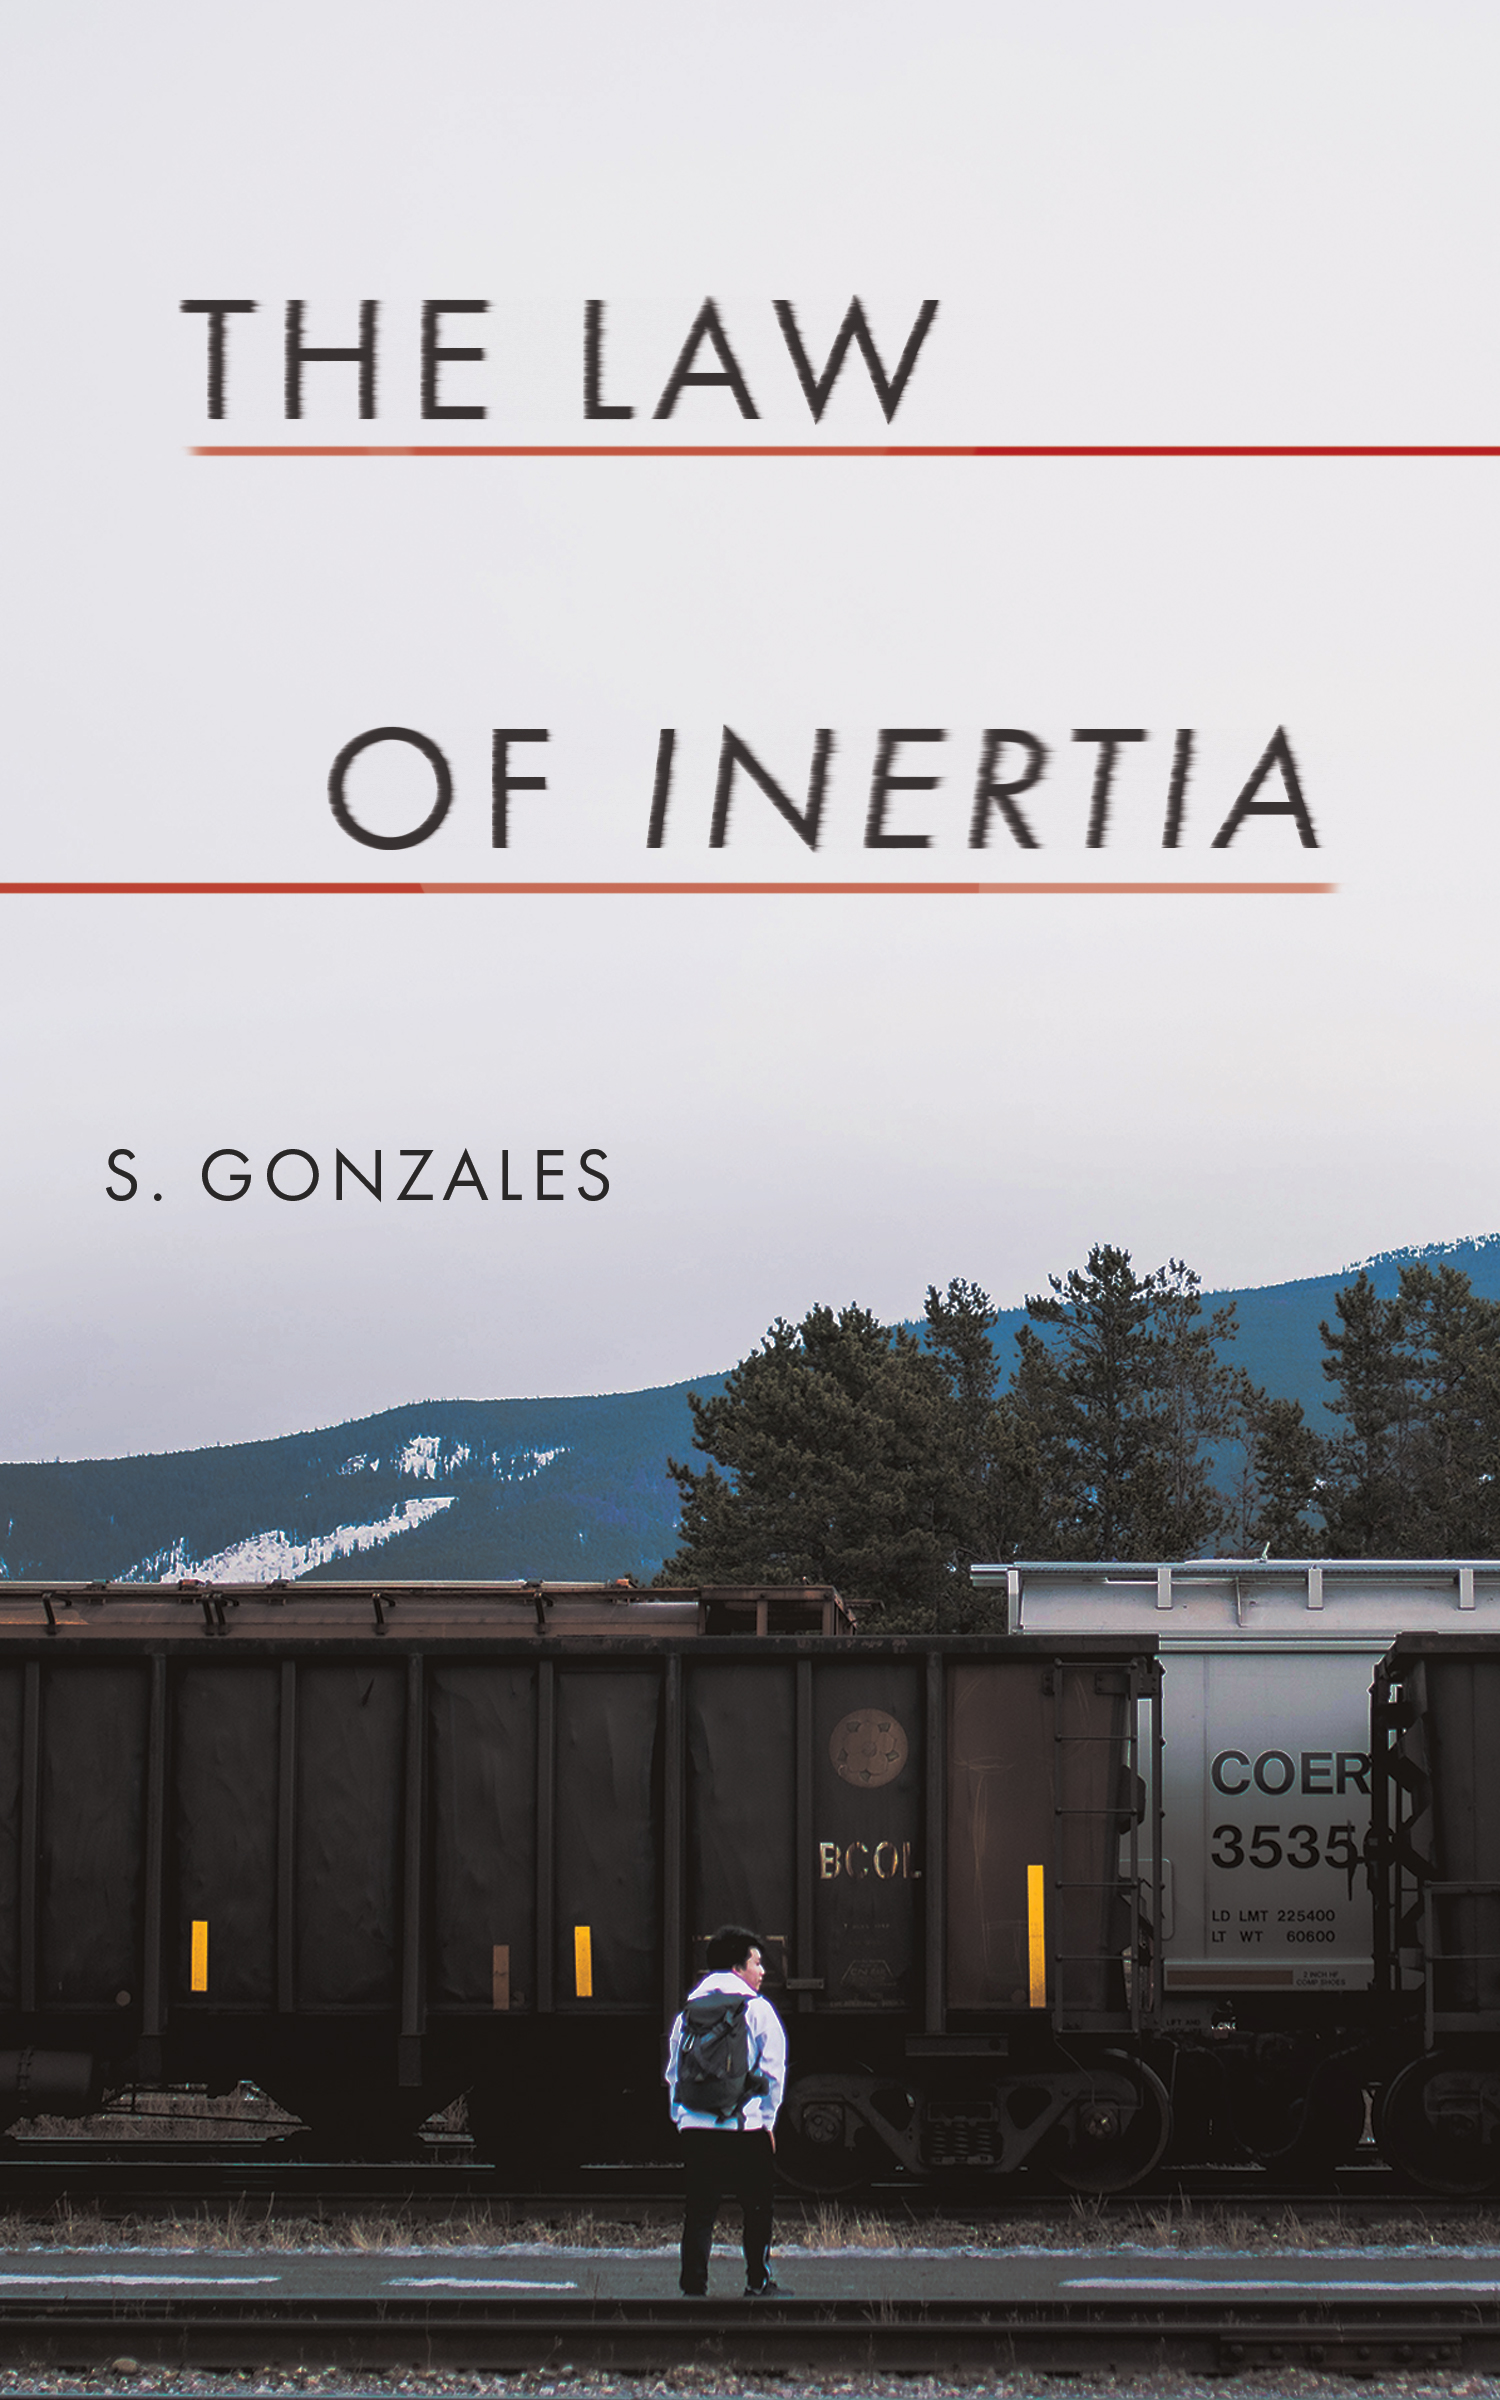 Gonzales S LAW OF INERTIA cover 2018-7-12.jpg